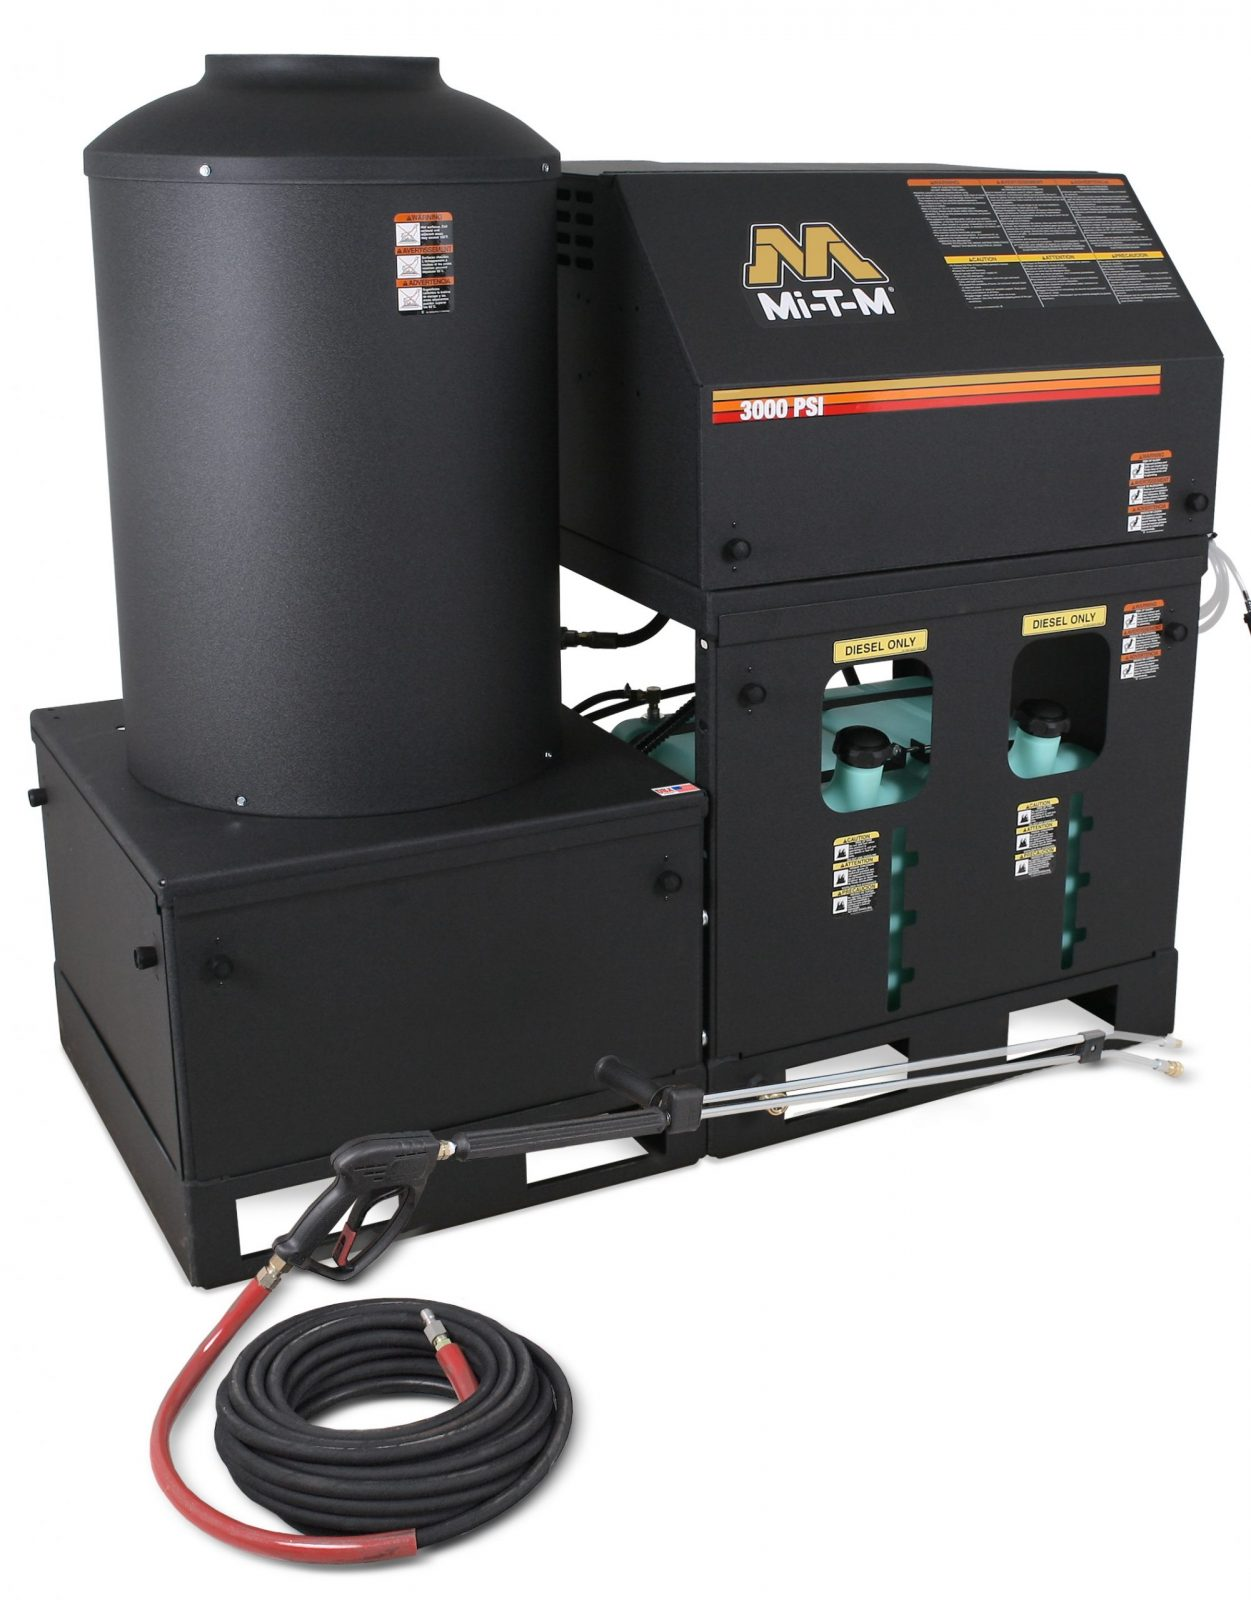 MiTM hot pressure washer